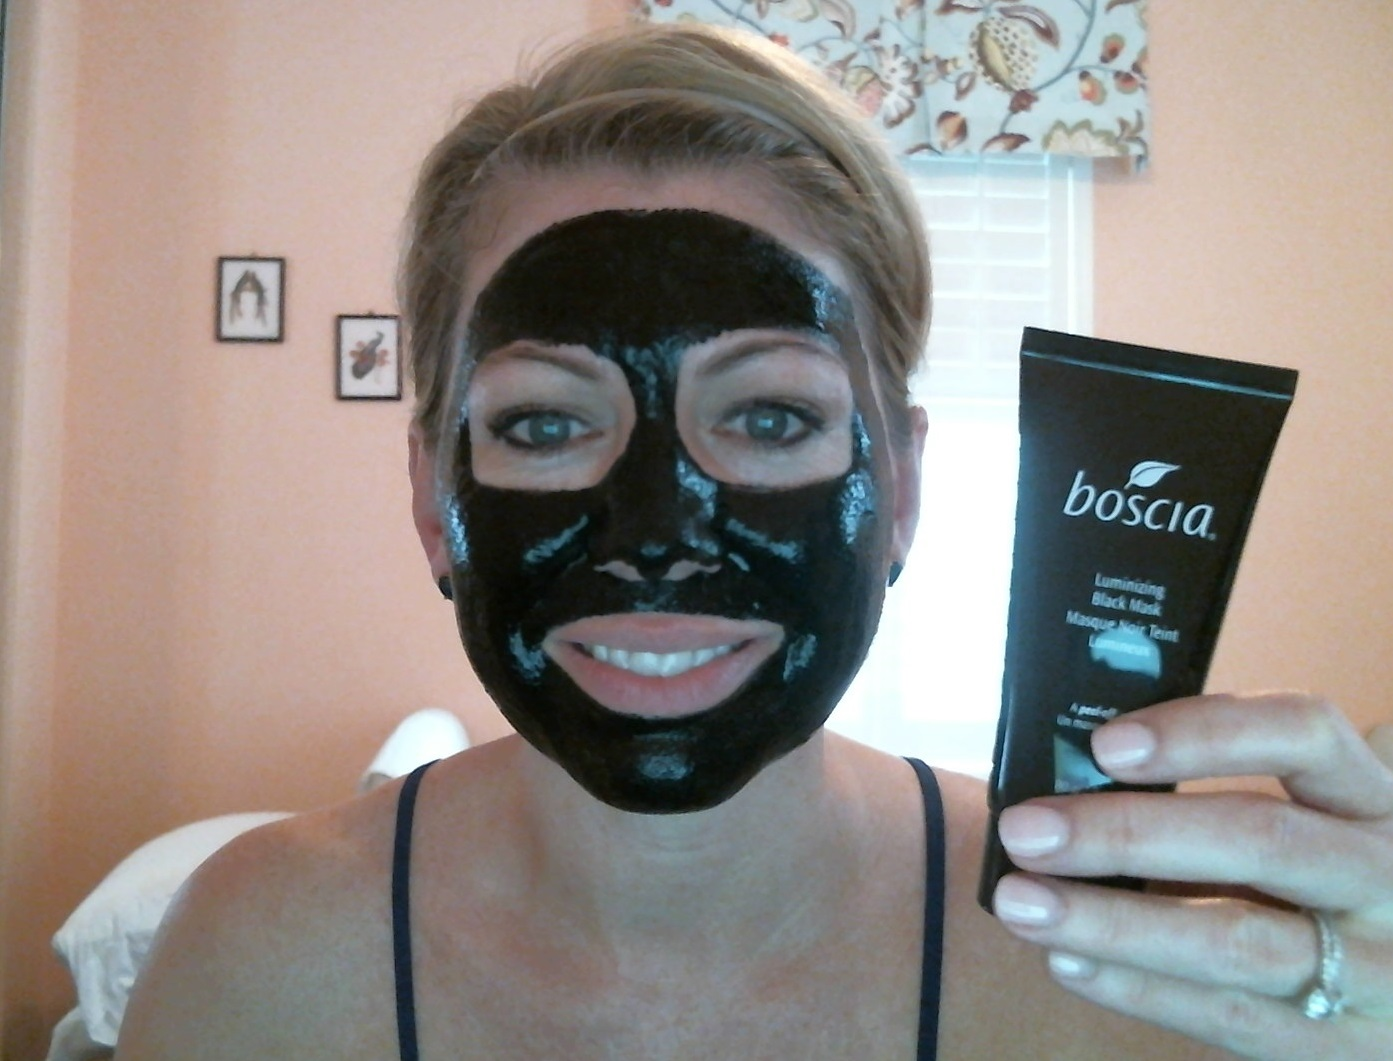 boscia luminizing black mask review and results. Black Bedroom Furniture Sets. Home Design Ideas